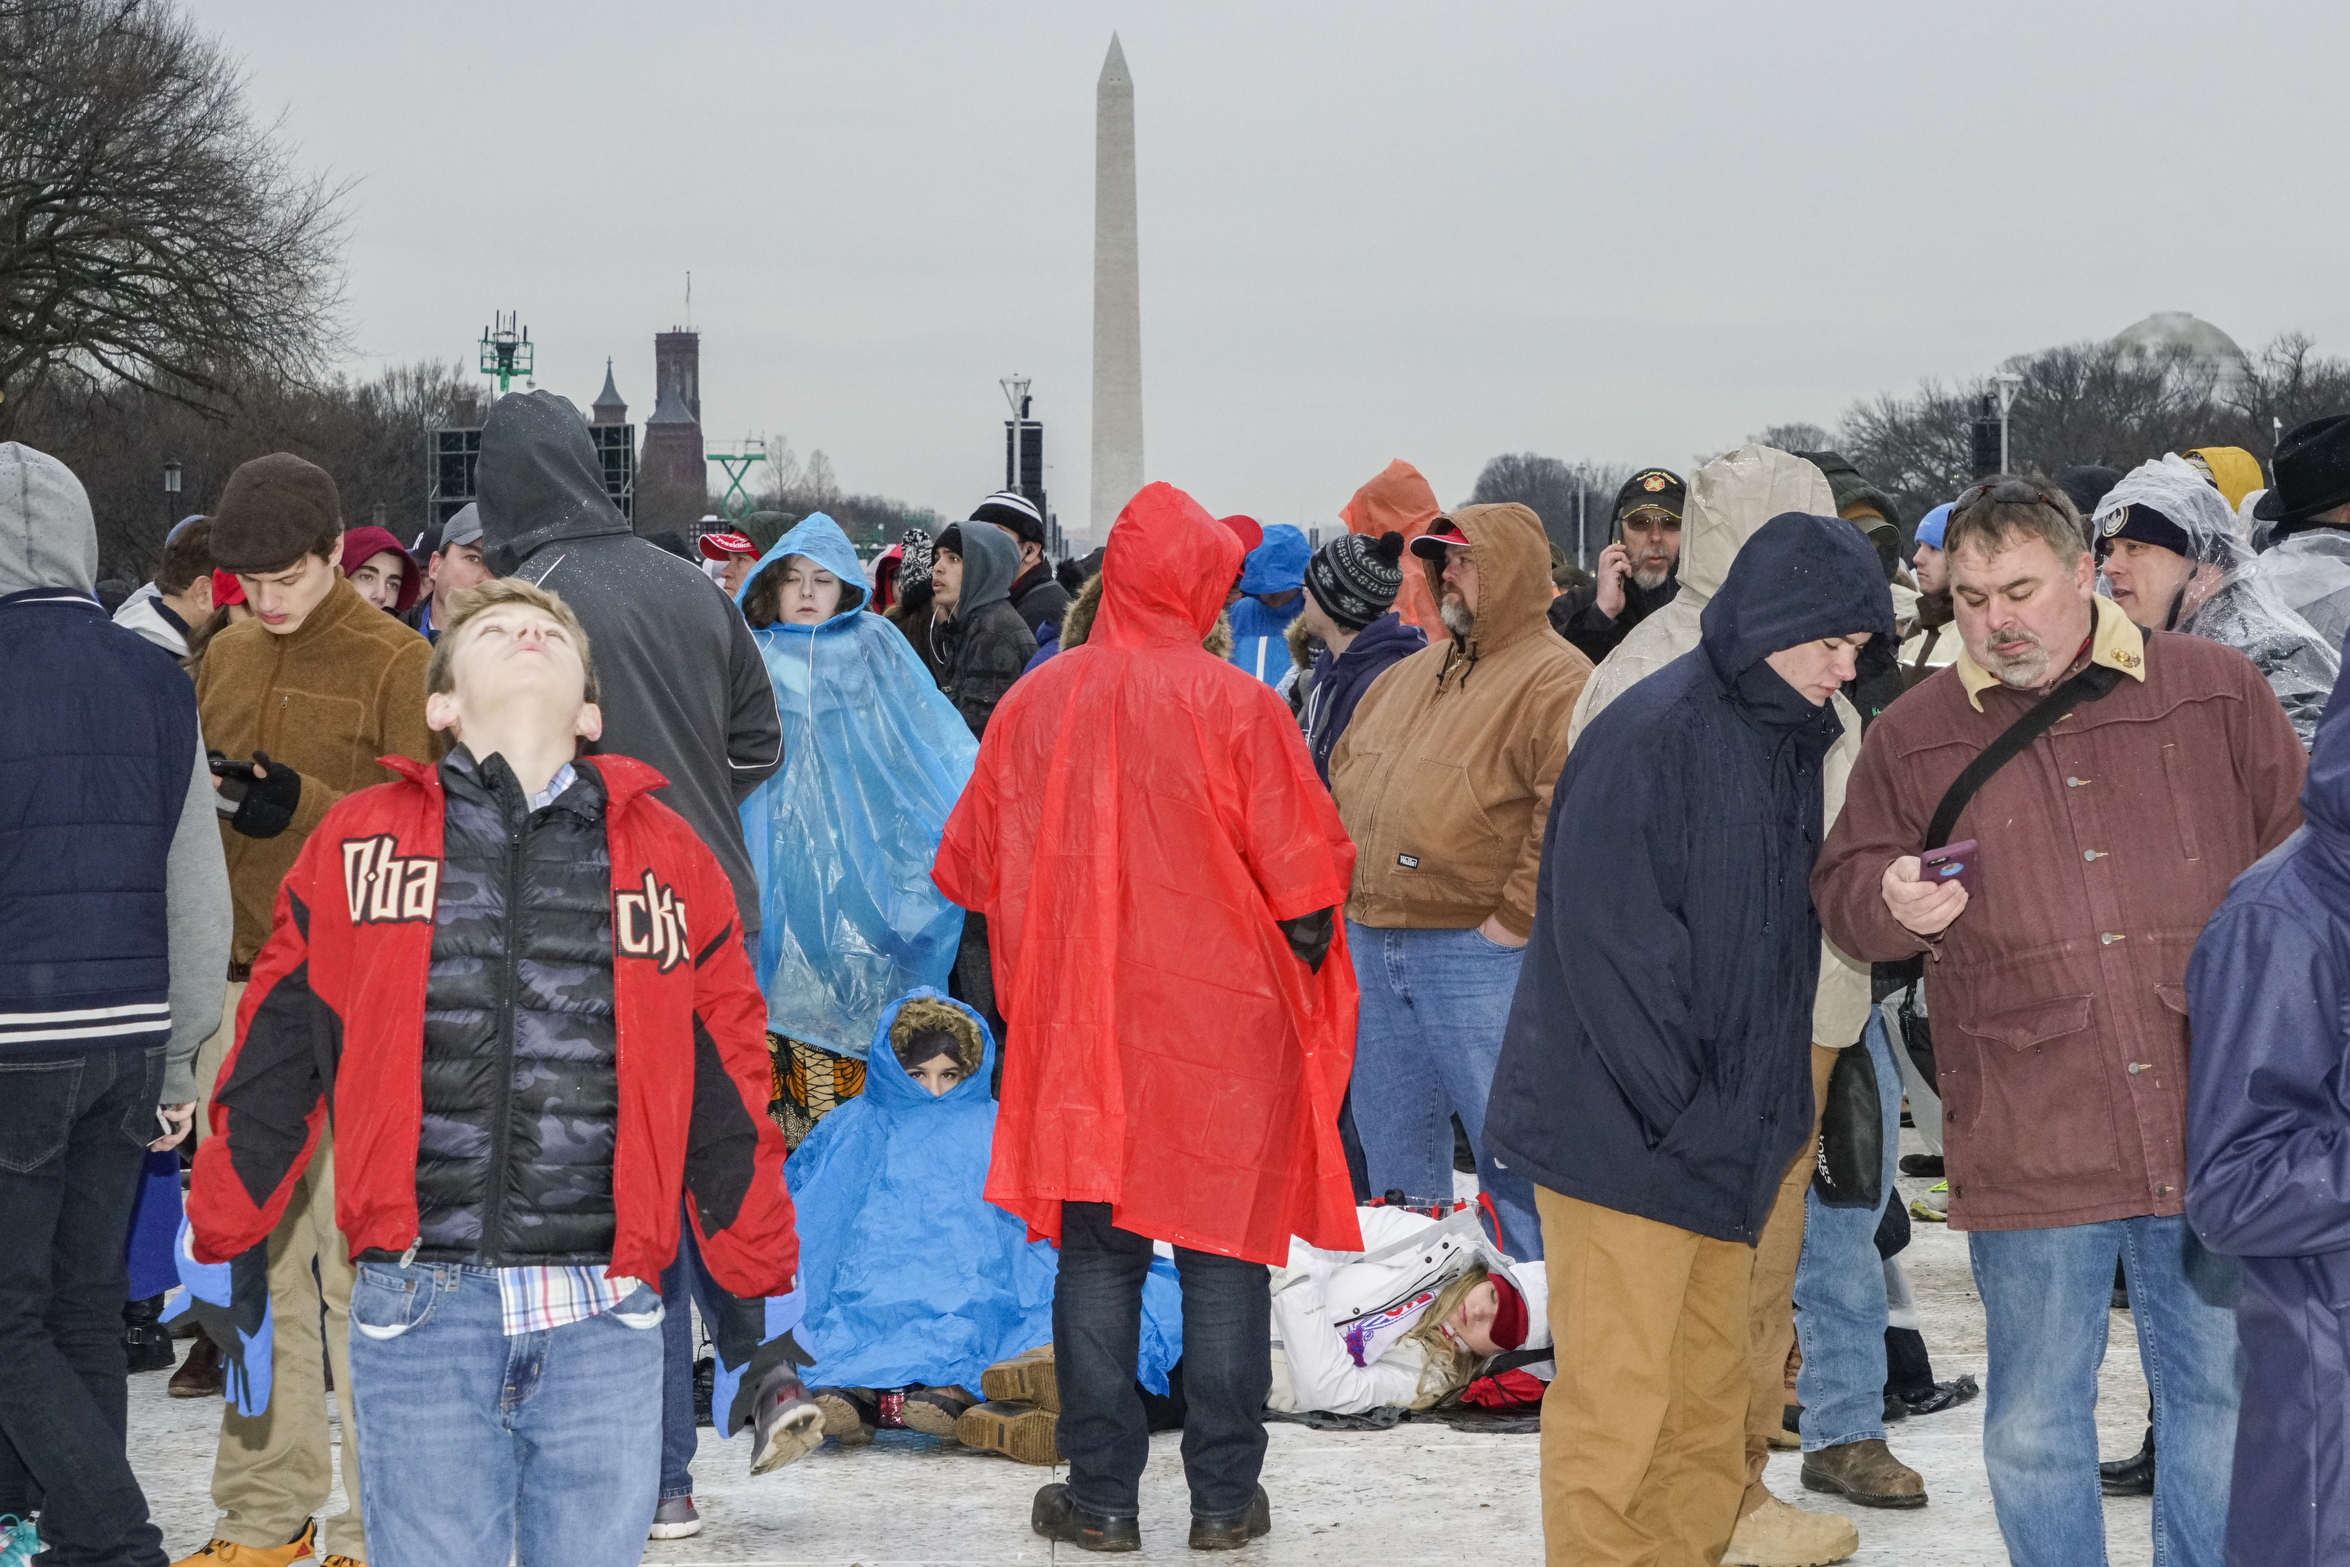 Crowds waiting for the inauguration of Donald Trump to be sworn in as the 45th President of the United States on the National Mall in Washington, D.C., Jan 20, 2017.